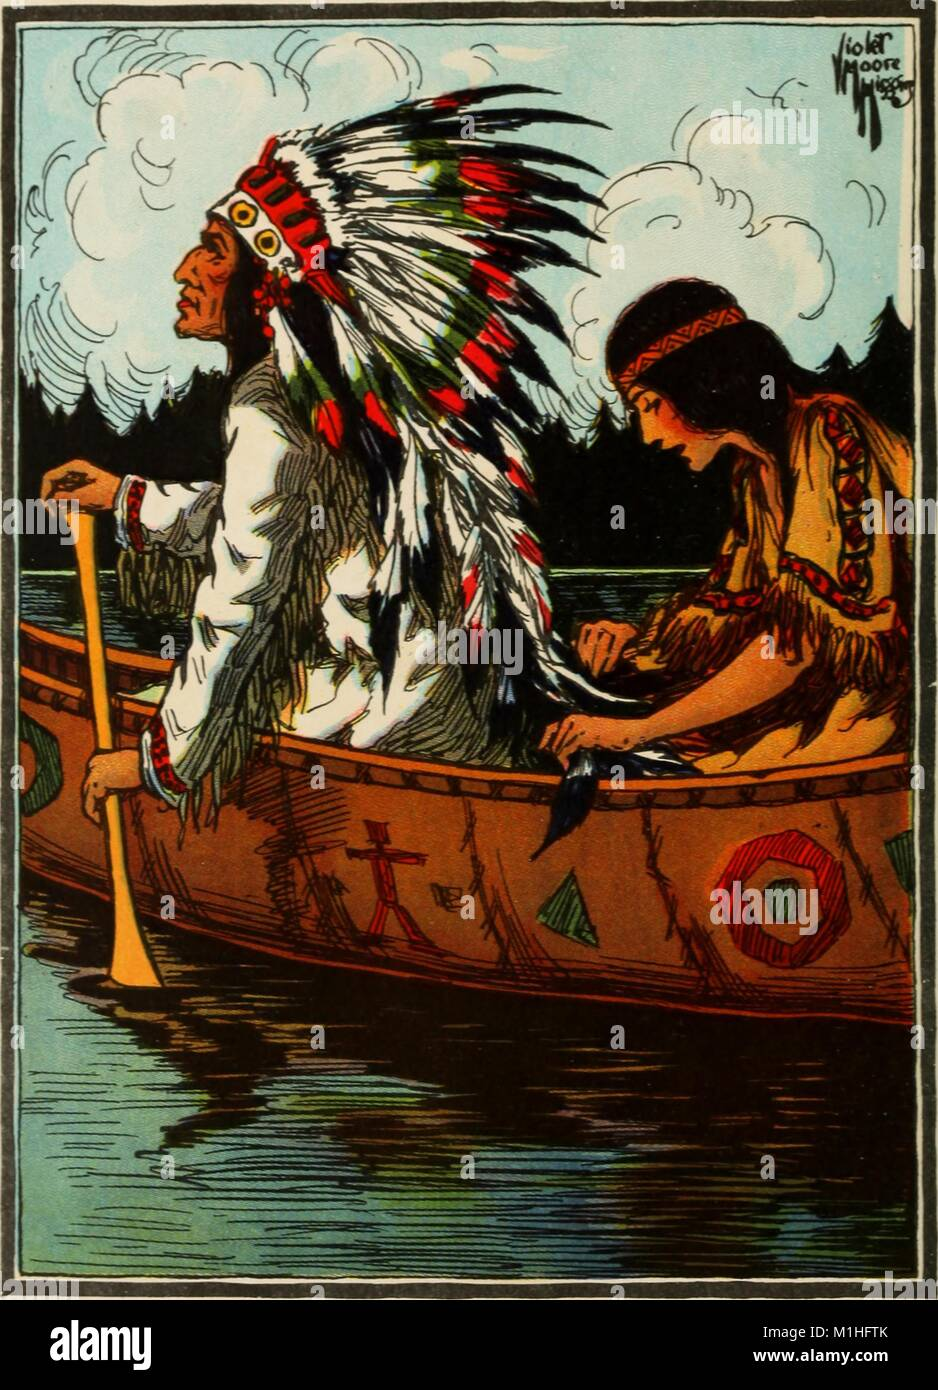 Illustrated color frontispiece, depicting a girl in a canoe sewing the feathers of a man wearing a feathered headdress, - Stock Image